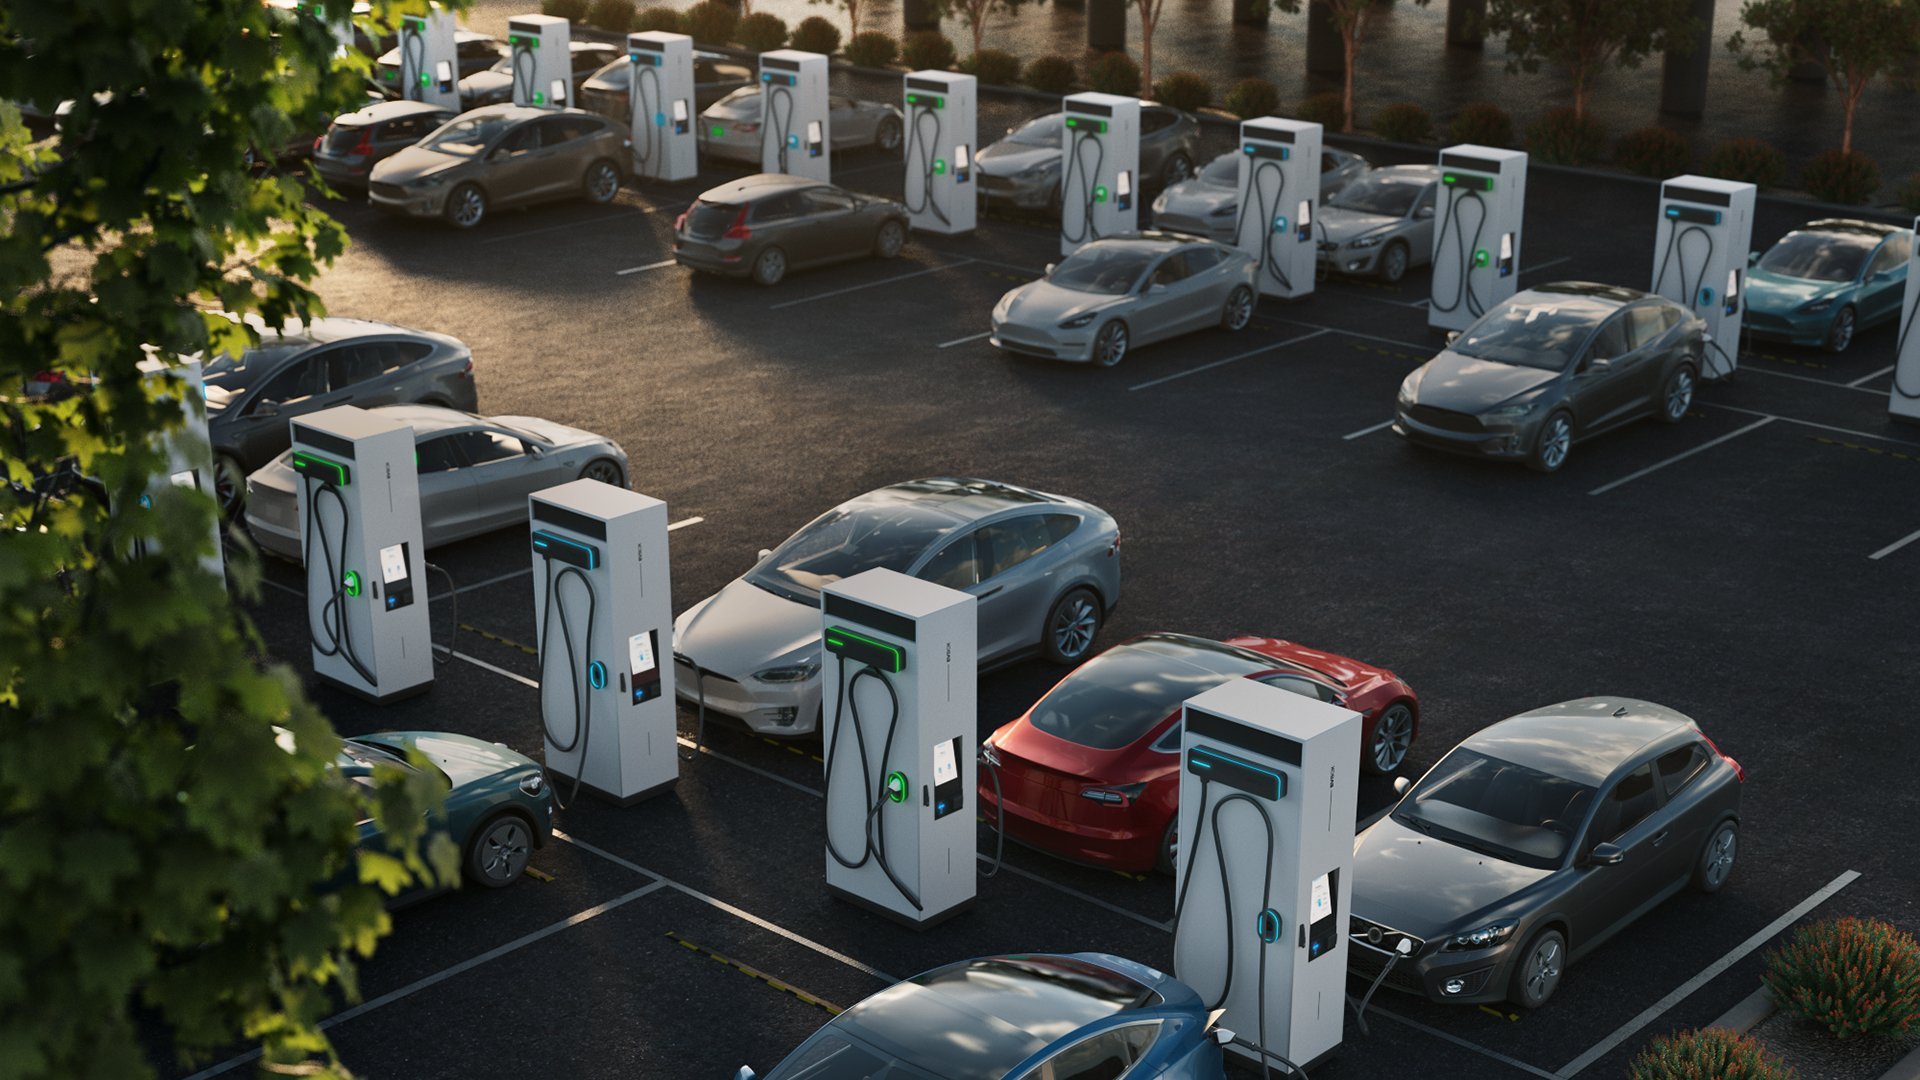 A parking lot with dozens of cars plugged into EV charging stations signifying the rise of electric mobility.